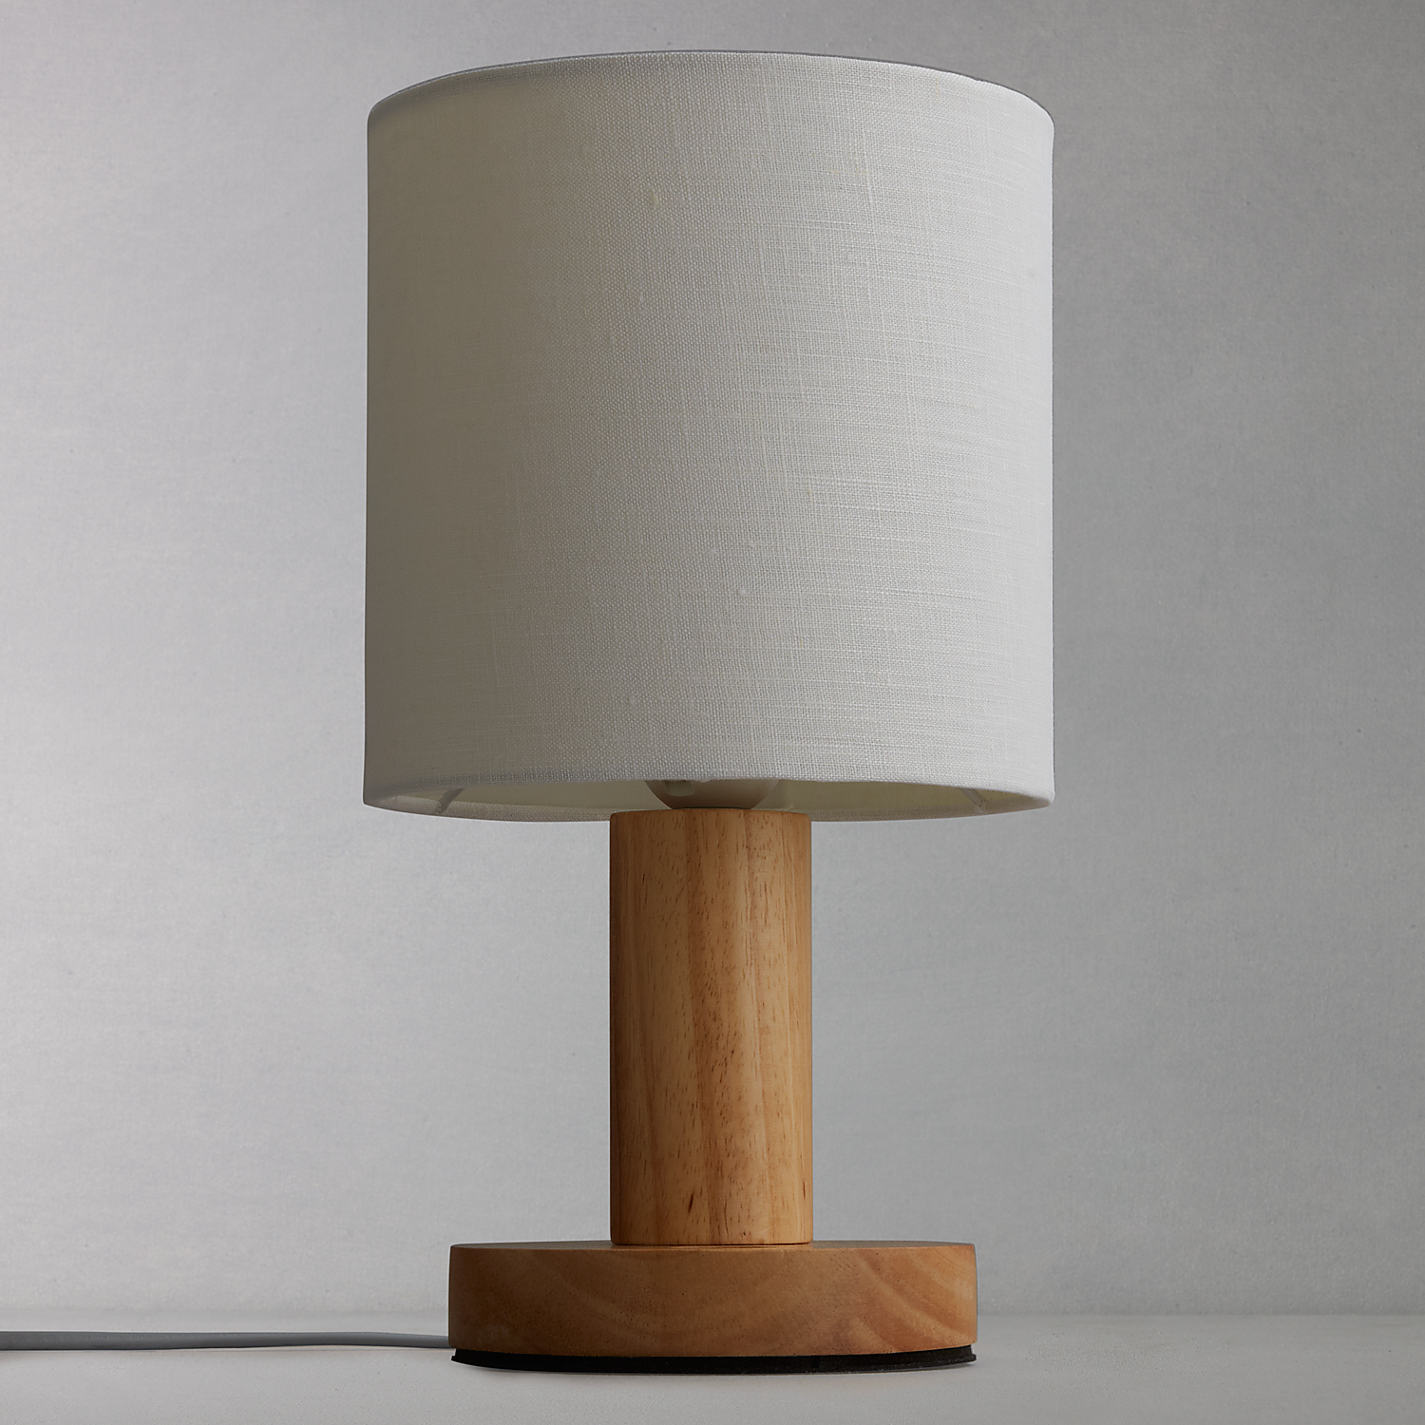 Buy john lewis slater wood touch table lamp john lewis buy john lewis slater wood touch table lamp online at johnlewis geotapseo Image collections